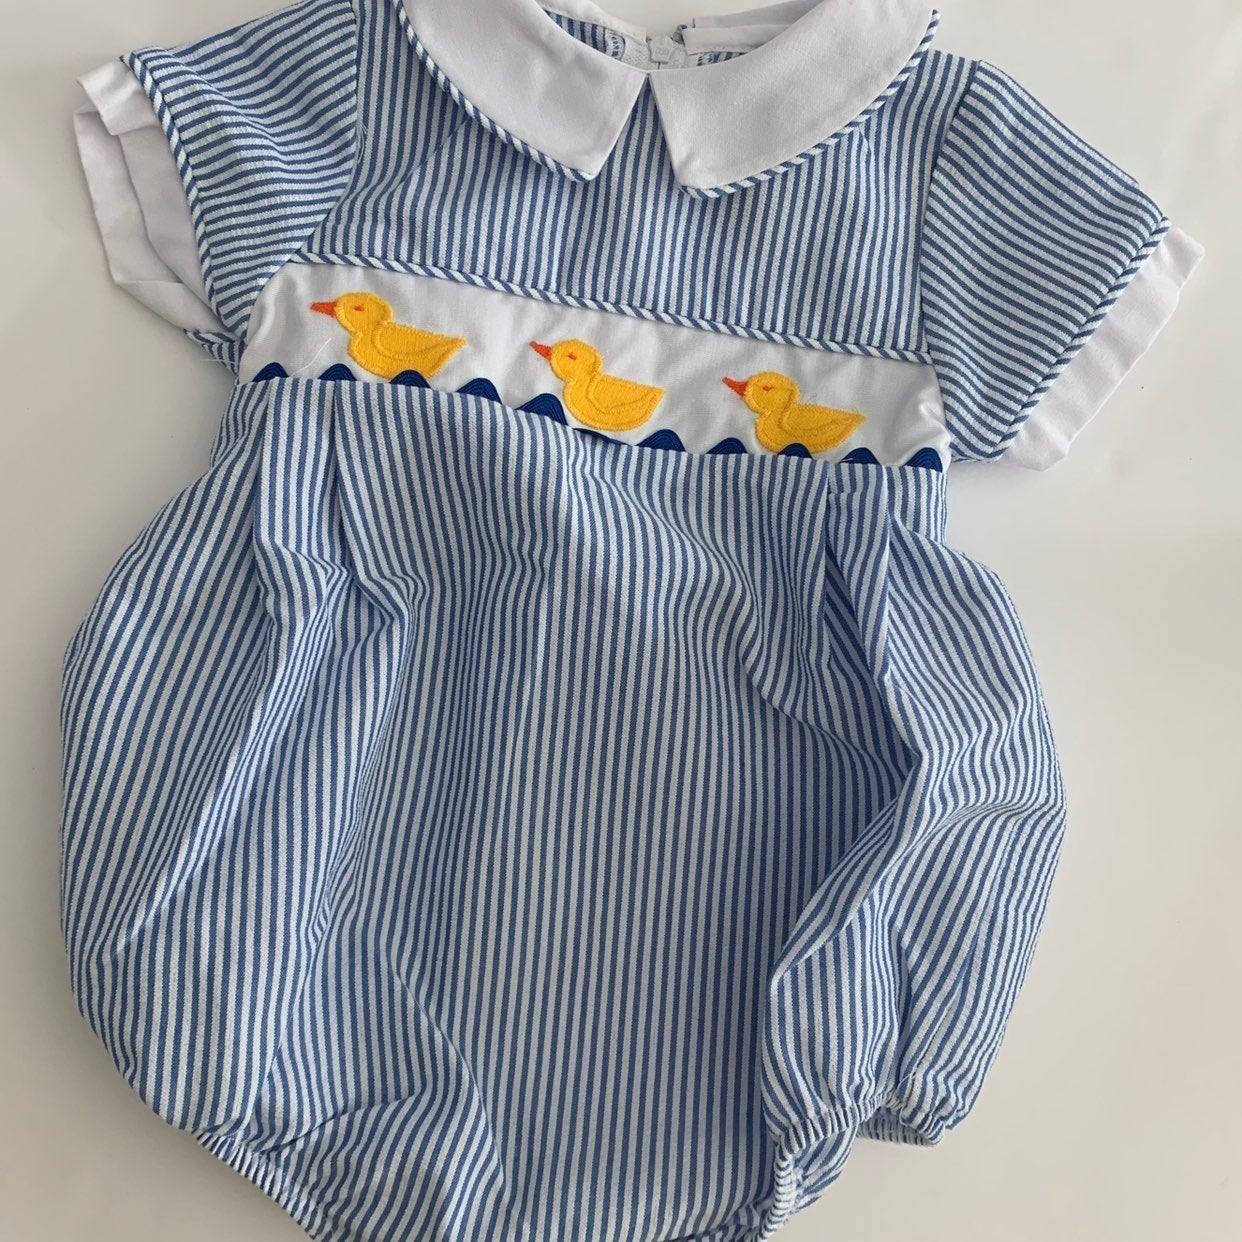 Vintage Baby Bubble Outfit